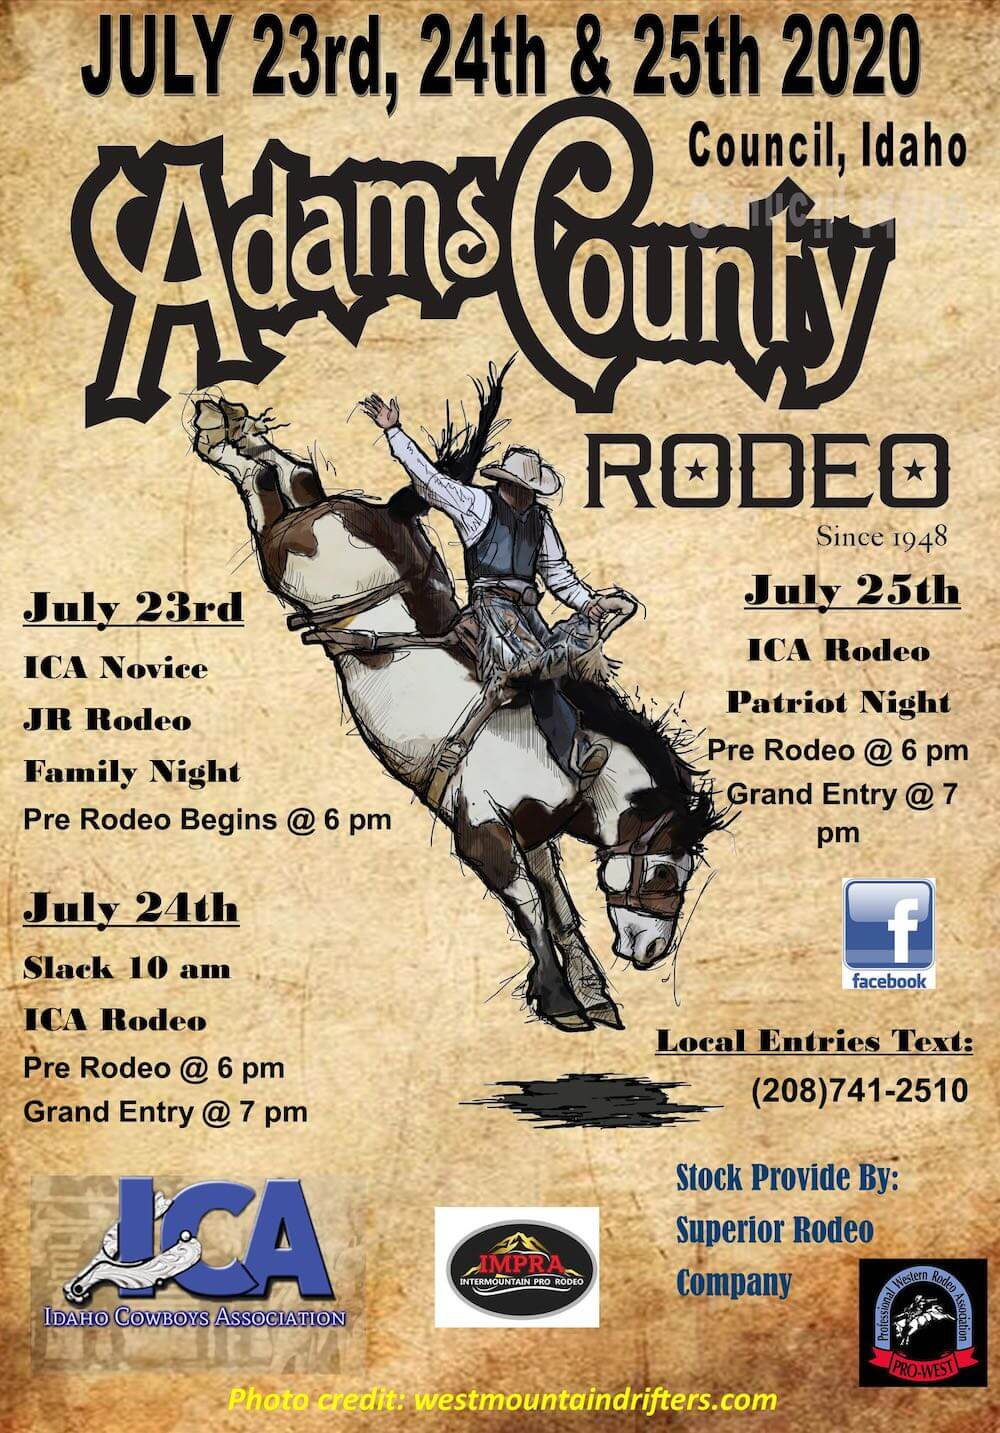 2020 Flier for Adams County Rodeo